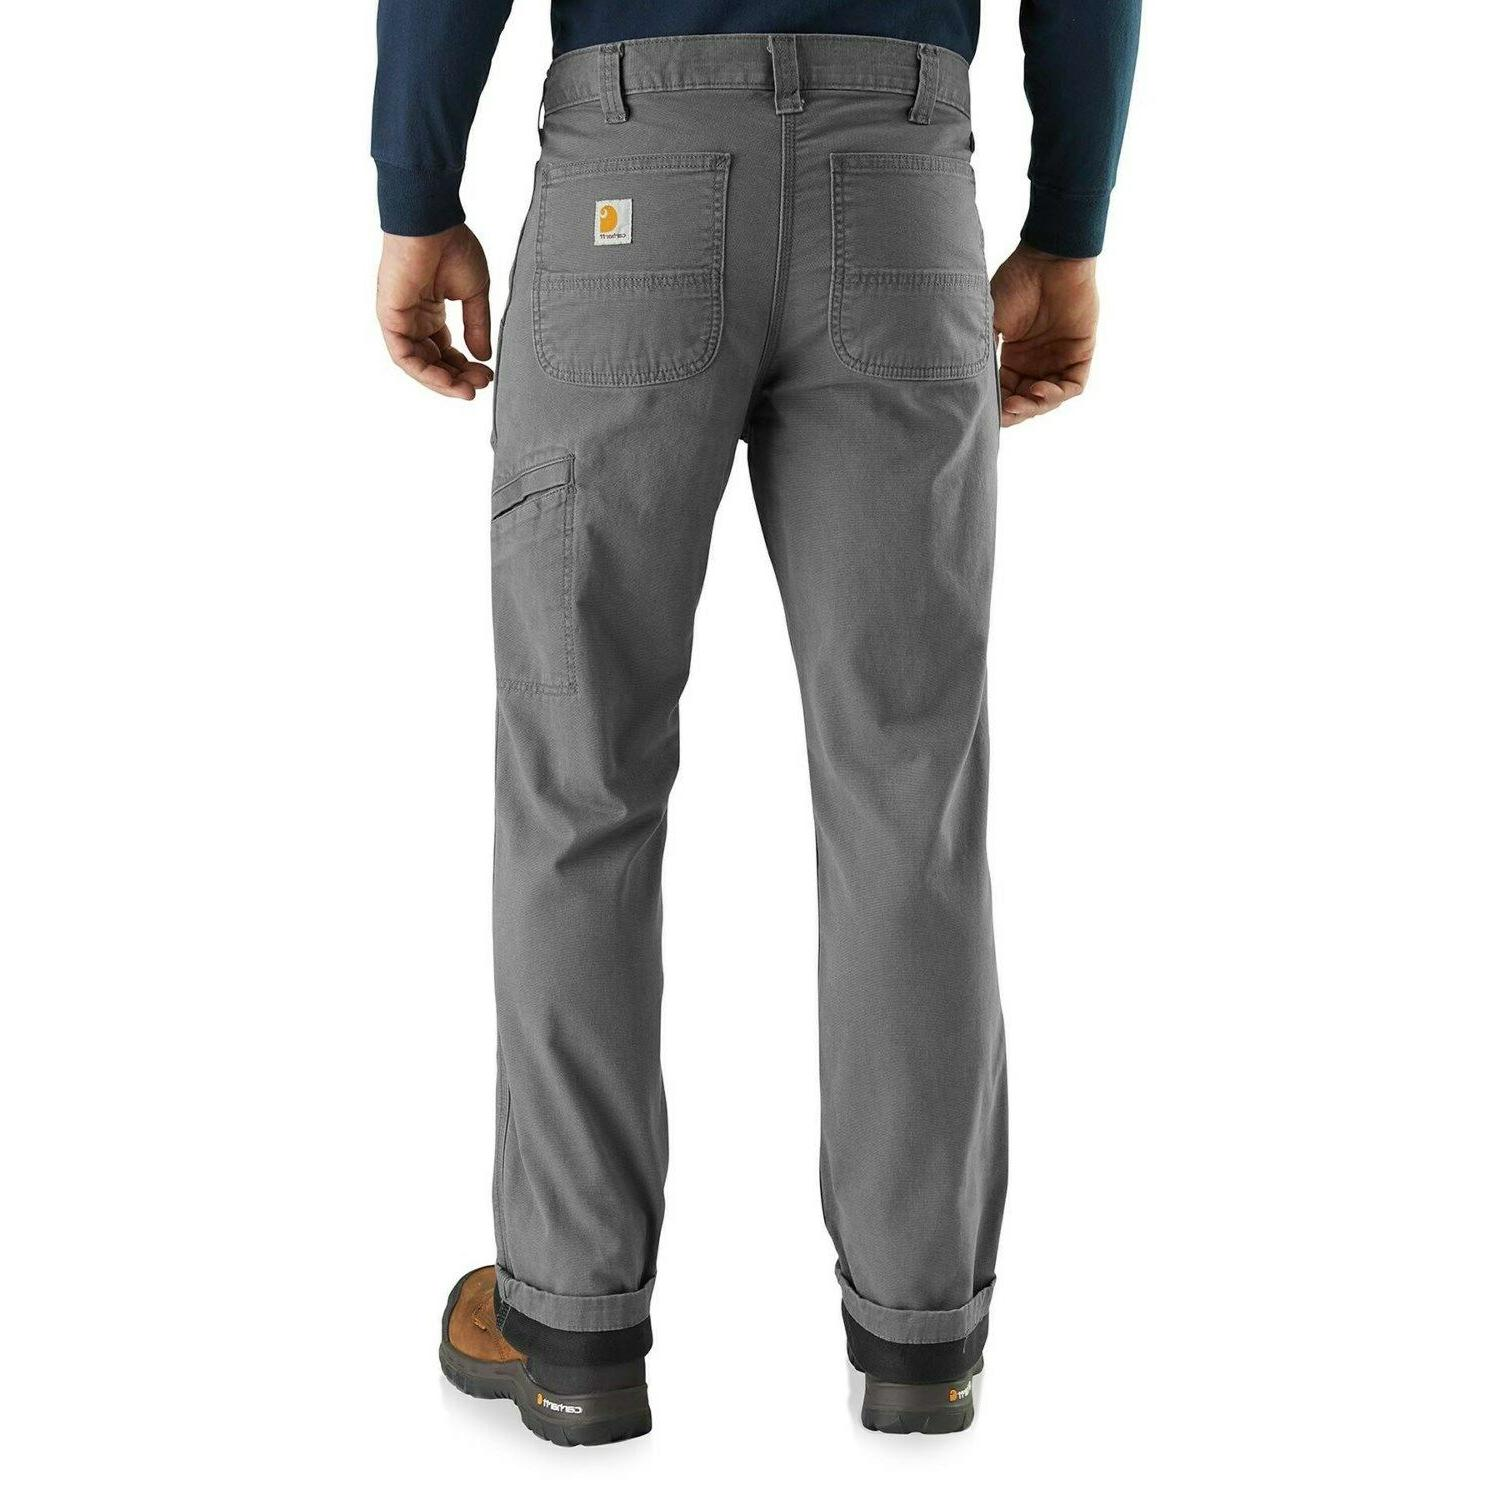 Men Jeans RuggedFlex®Rigby Dungarees KnitLined 2nd 40x32